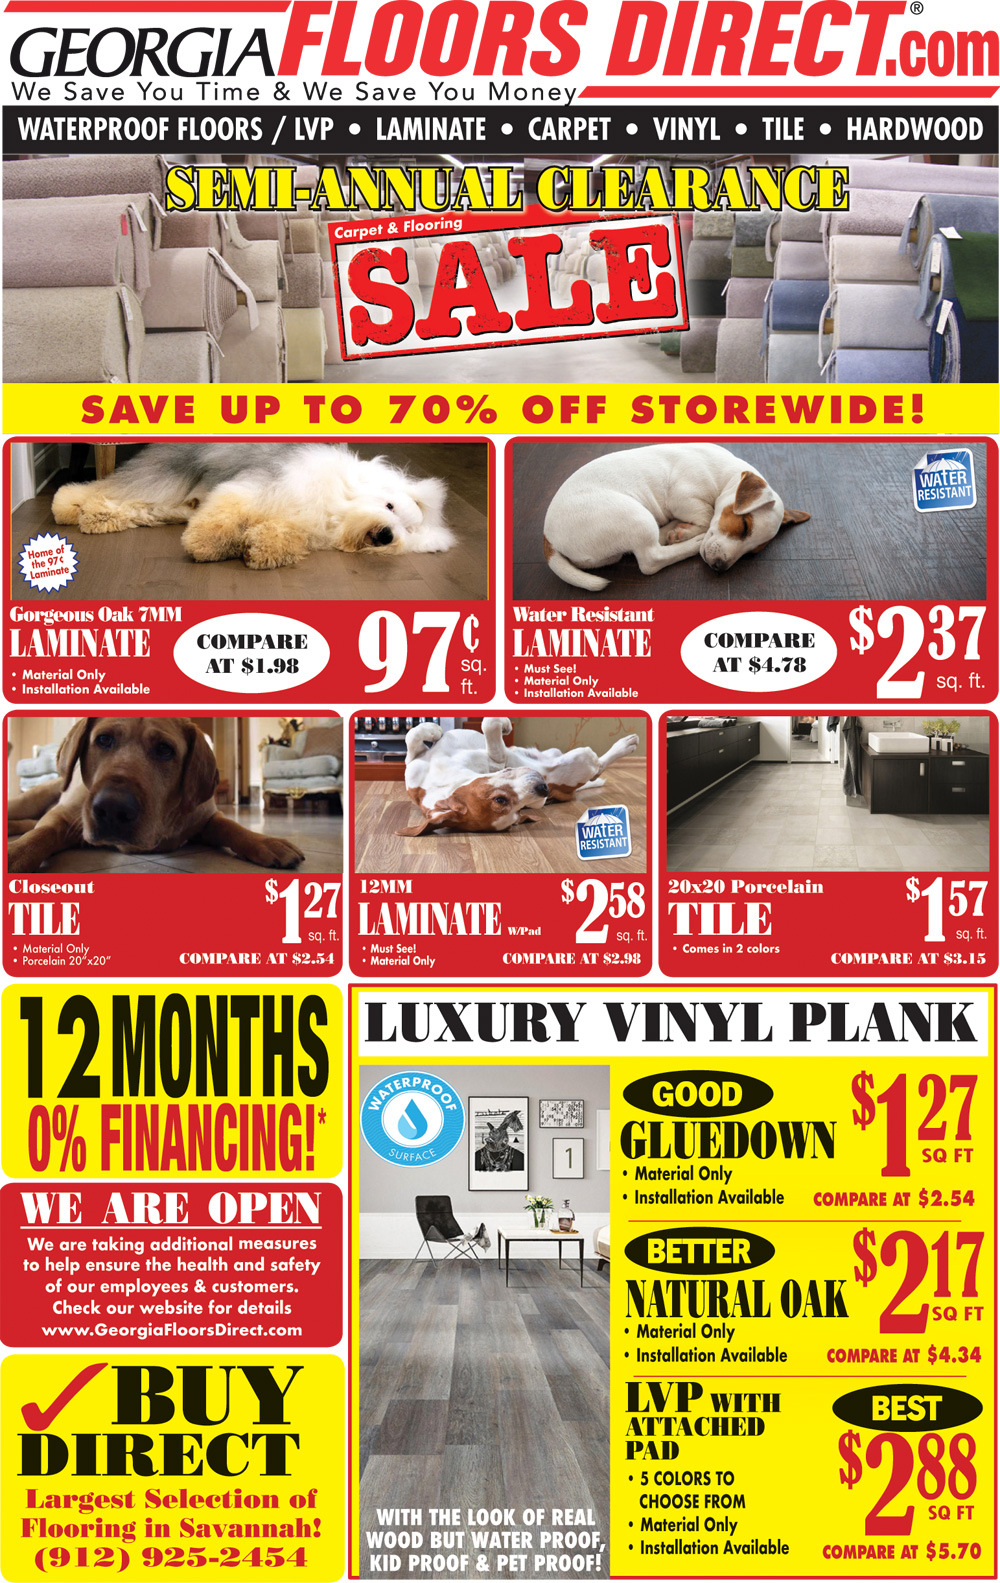 Specials at our Savannah store